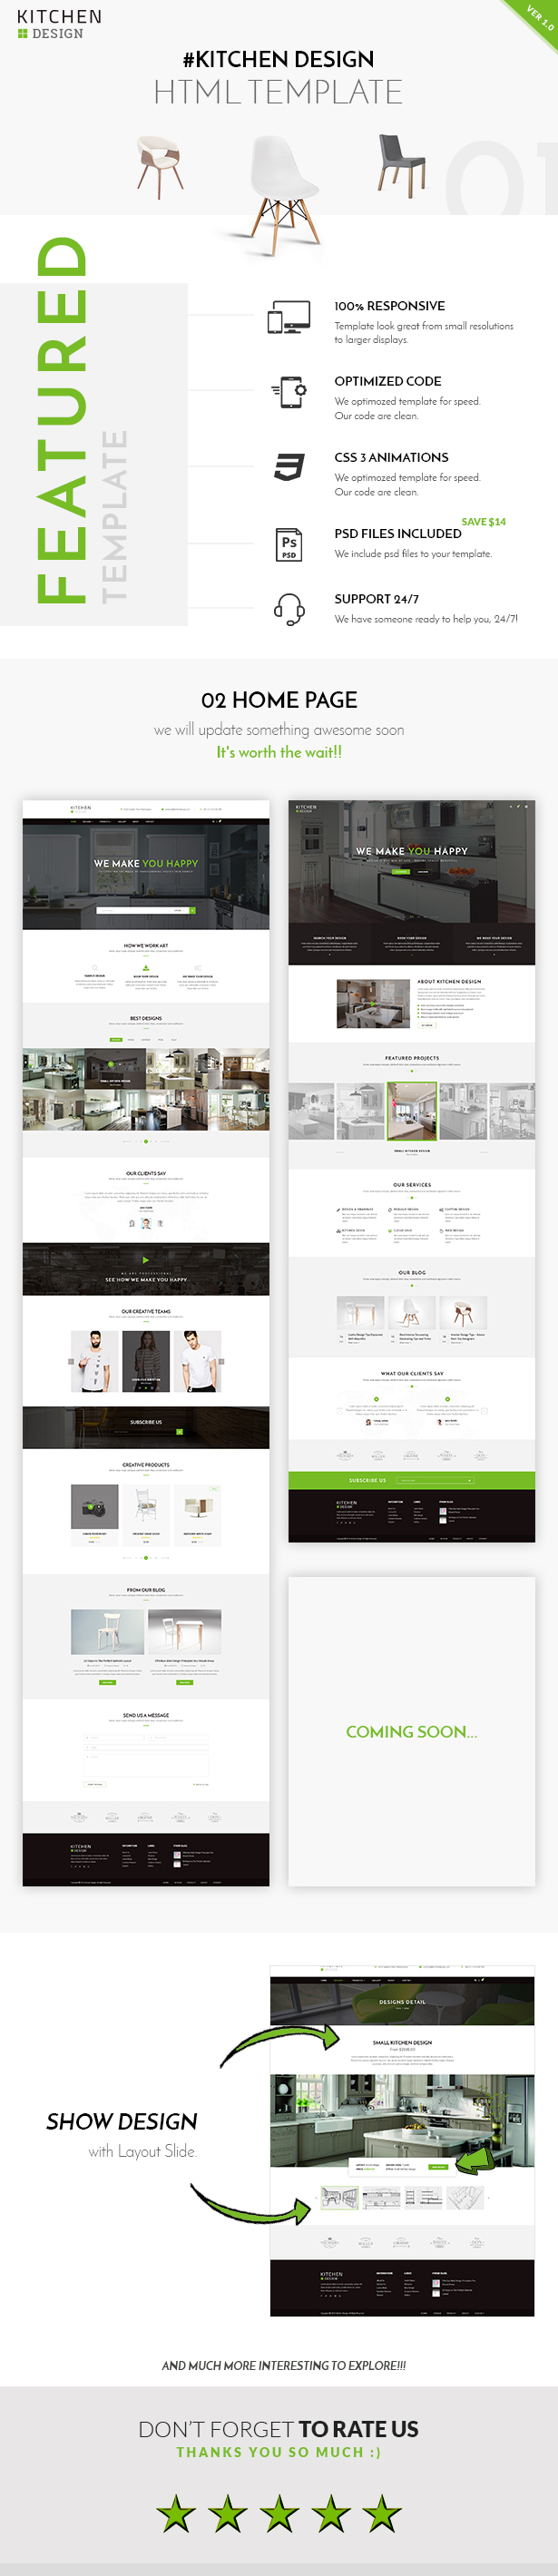 Kitchen Design HTML Responsive Template QTC Media - Html site template